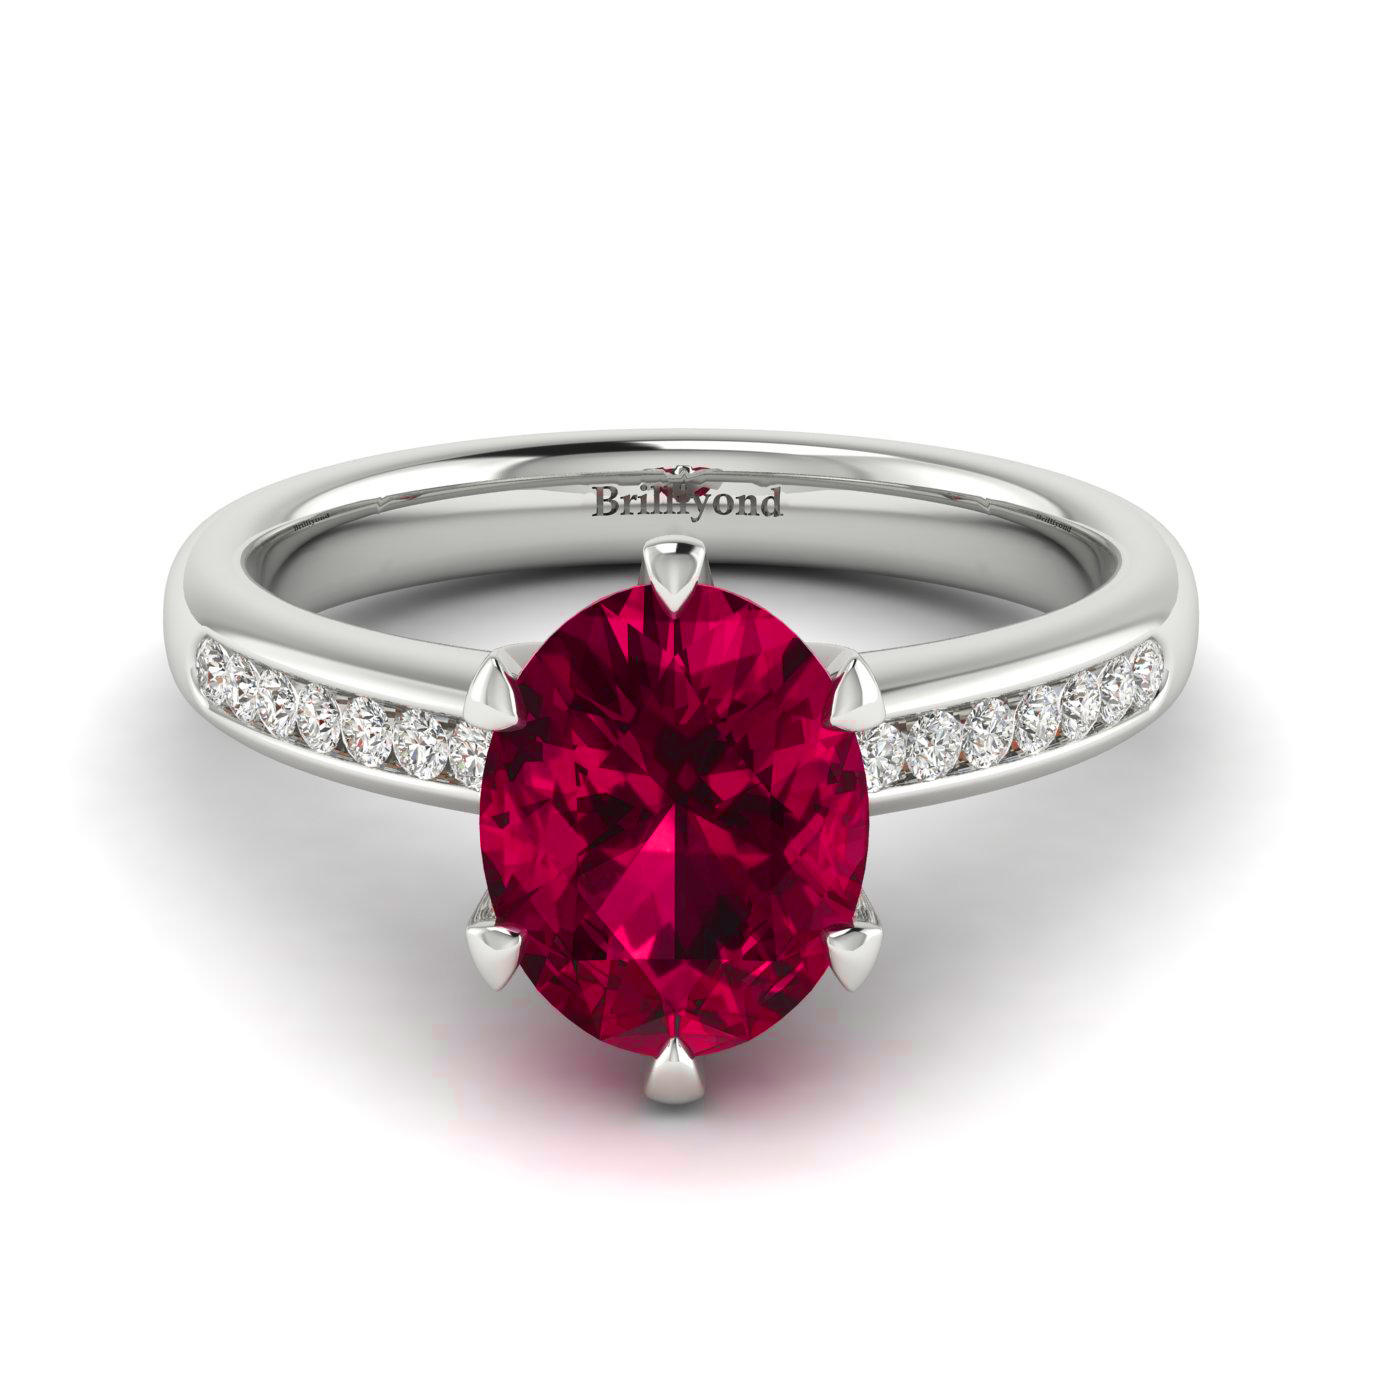 Oval Engagement Ring with Ruby Centre Stone and Diamond Accents